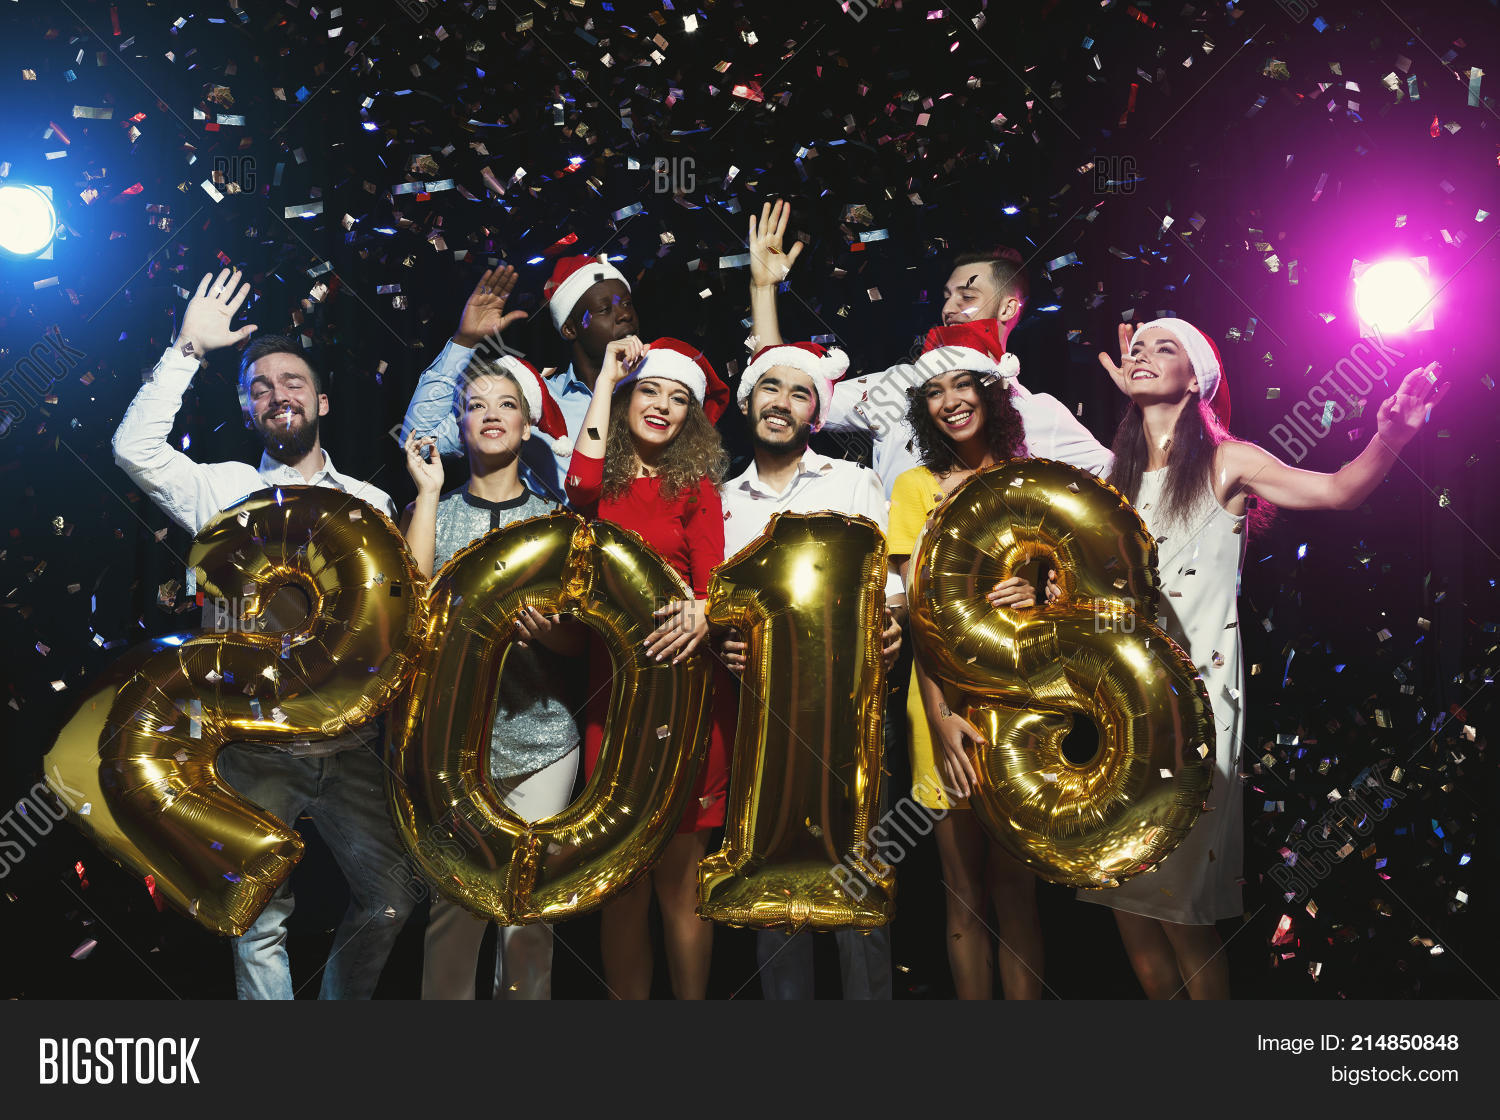 Office Christmas Party Image & Photo (Free Trial) | Bigstock